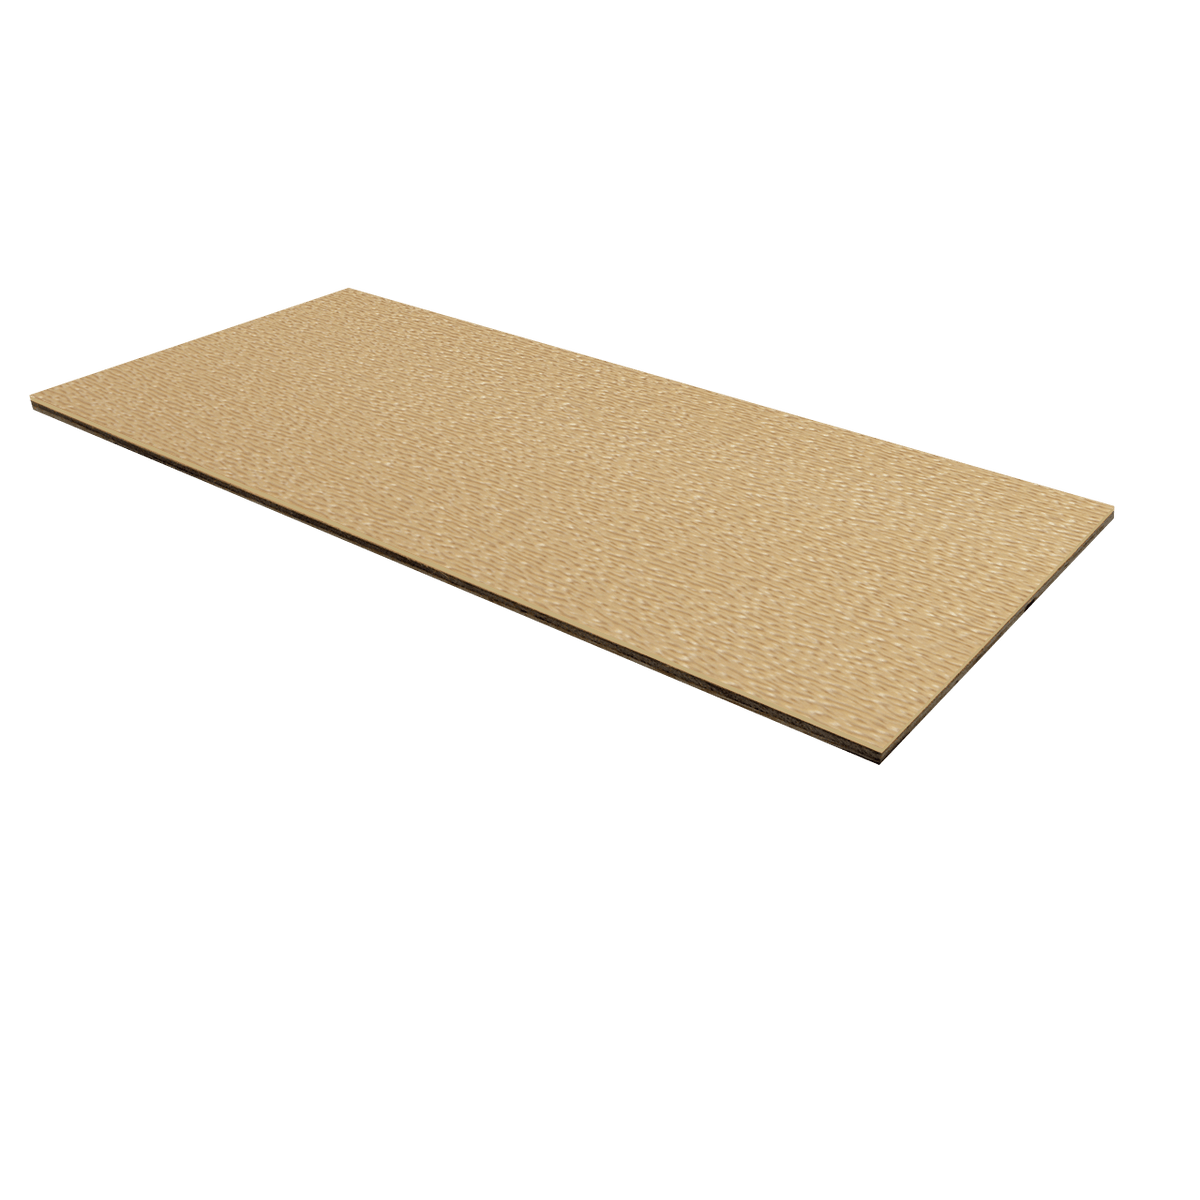 "1/8"" Luan Plywood ABS Laminate - Desert Tan"